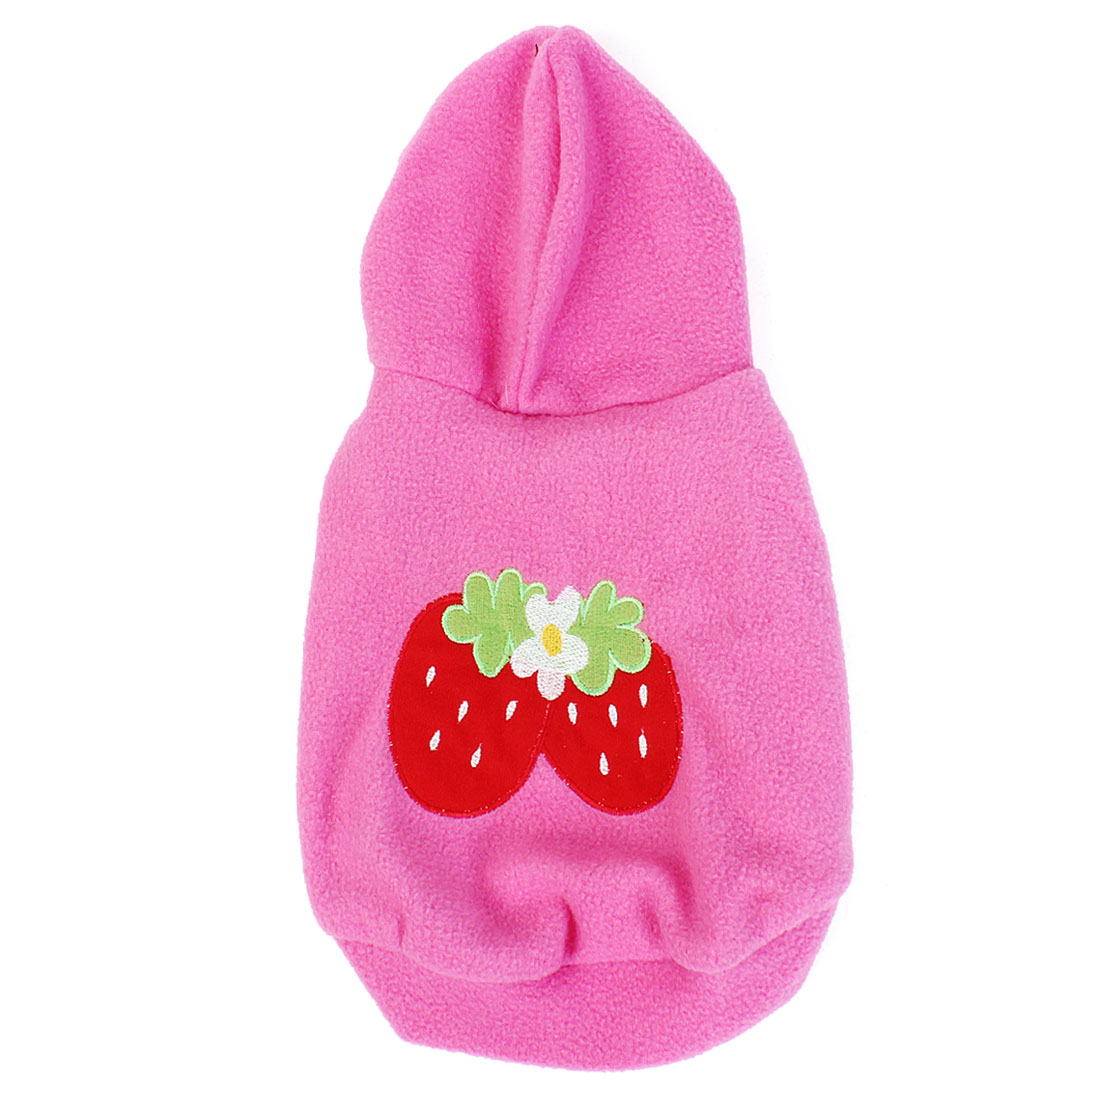 Winter Warm Strawberry Pattern Hoodie Sleeveless Pet Dog Doggy Apparel Coat Clothes Pink Size S